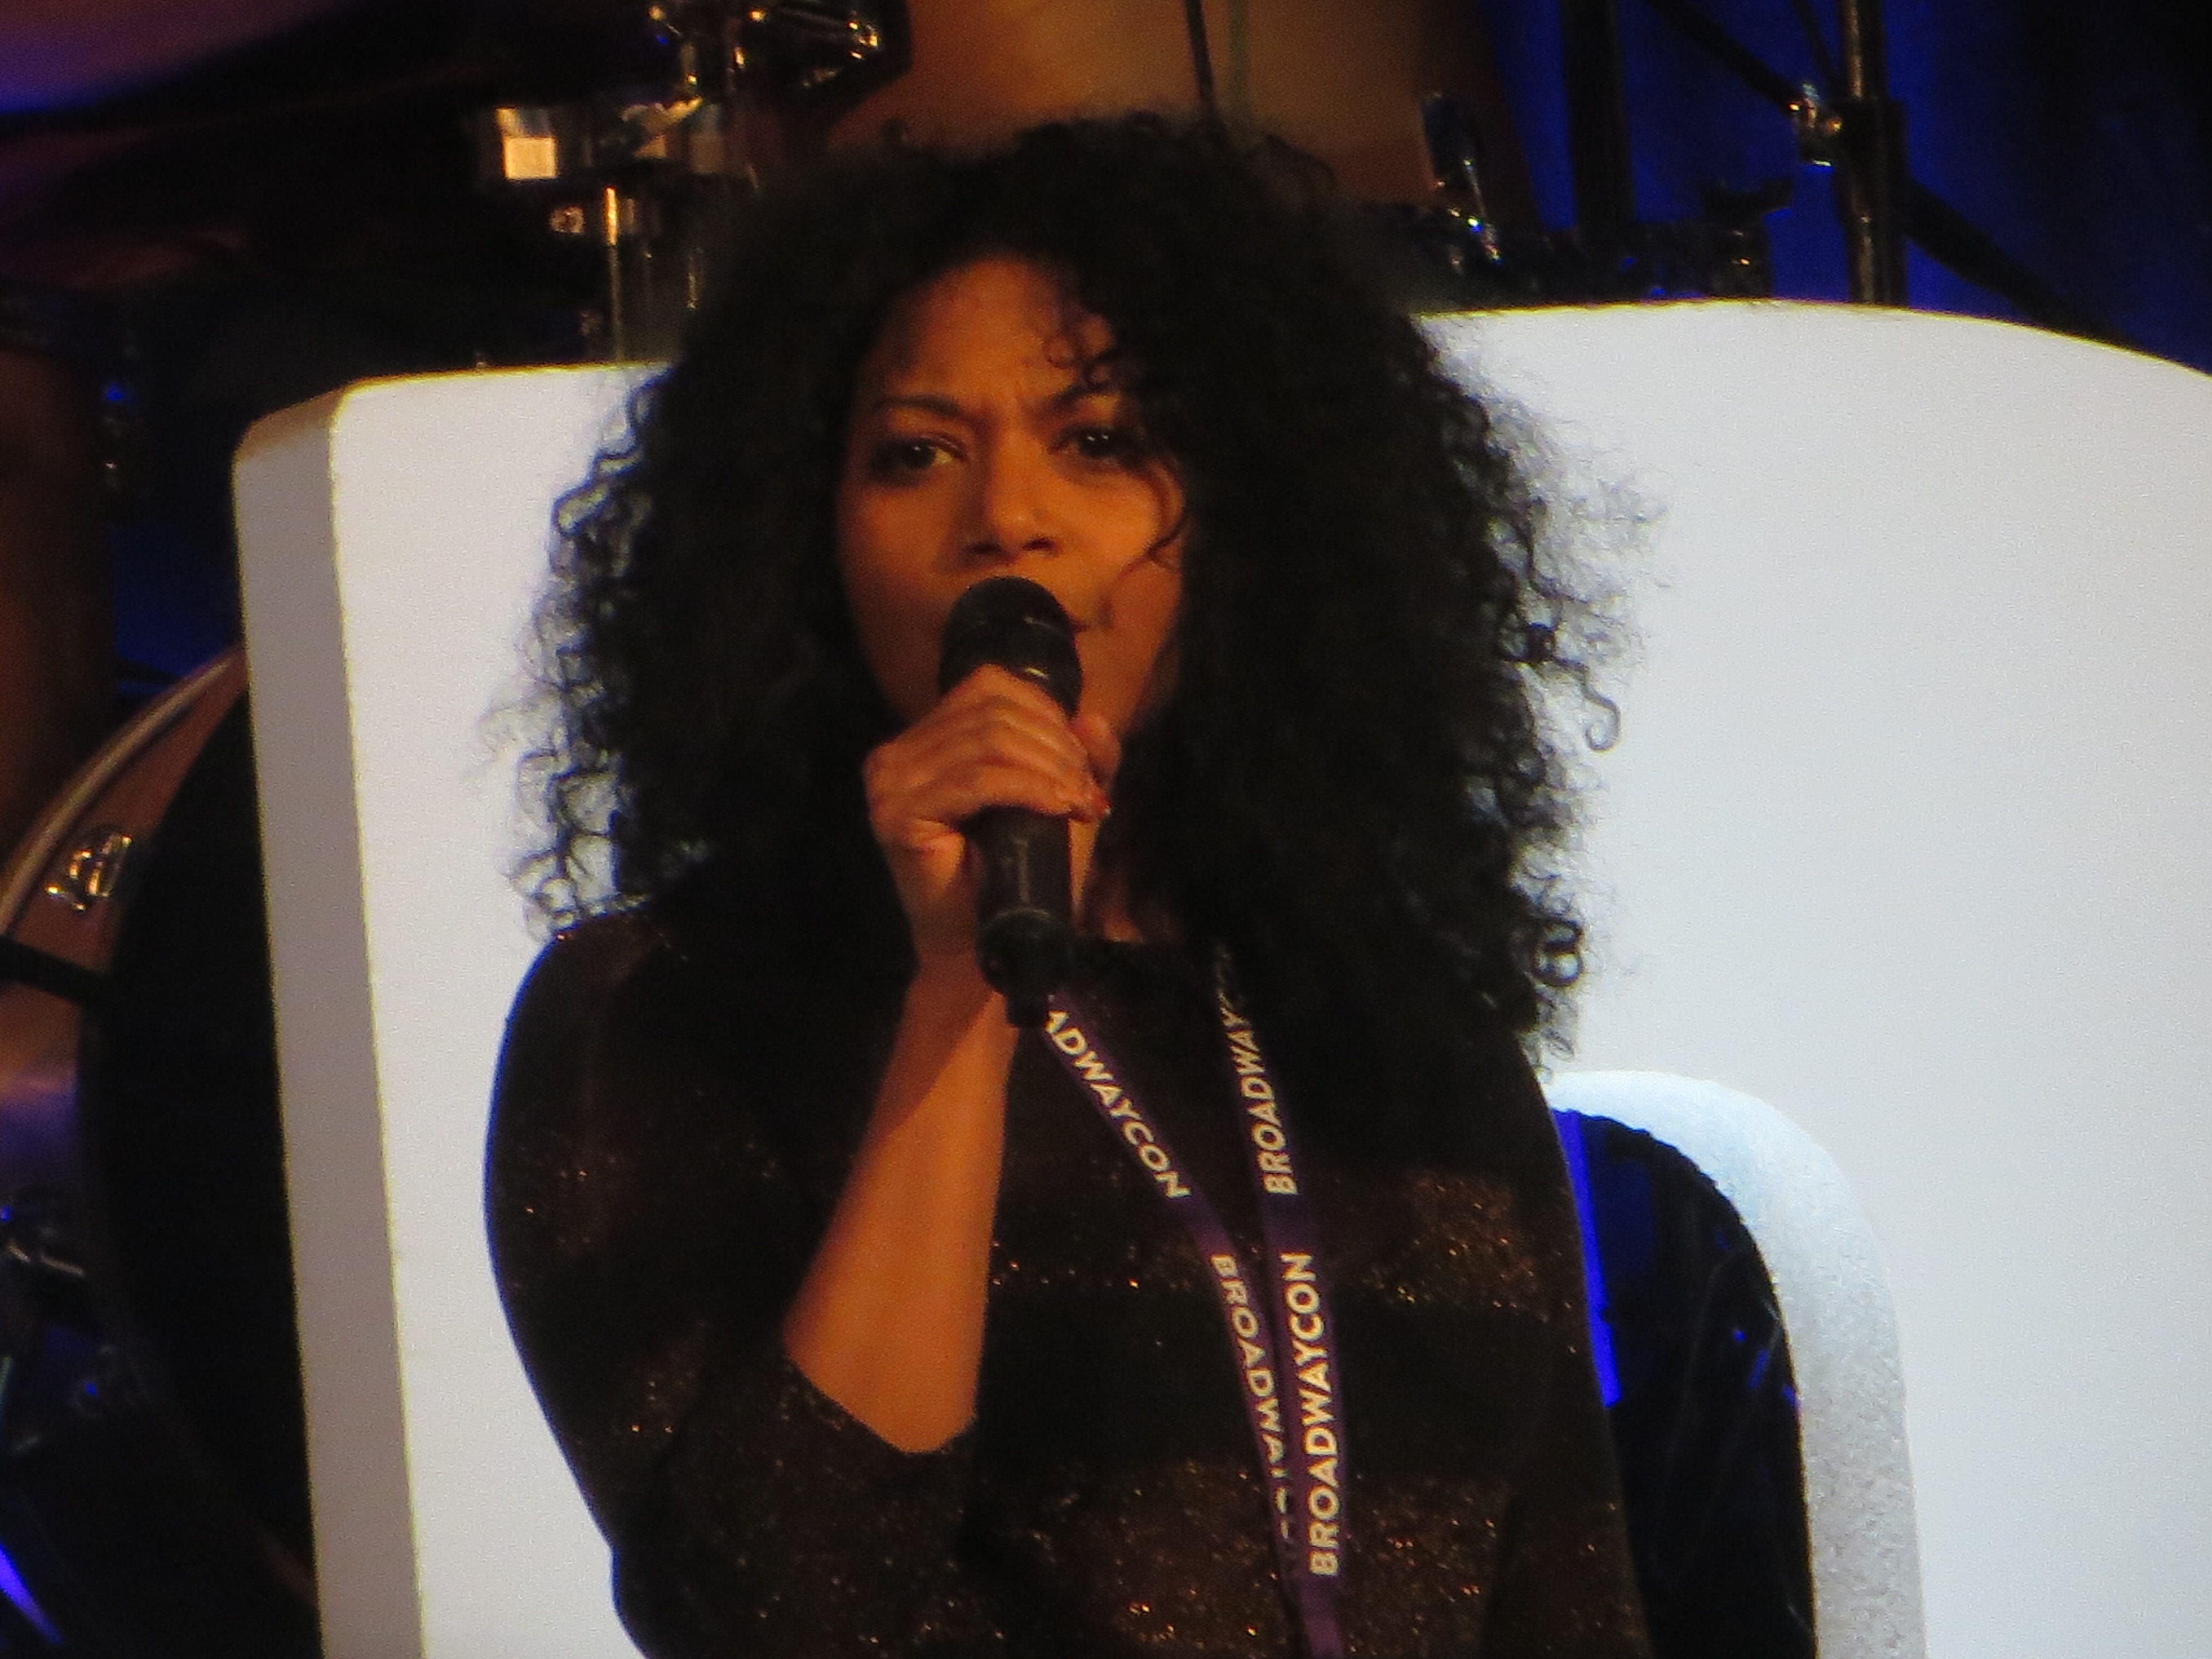 Rebecca Naomi Jones performs at BroadwayCon 2019, held Jan. 11 to 13, 2019, at the New York Hilton Midtown in Manhattan.